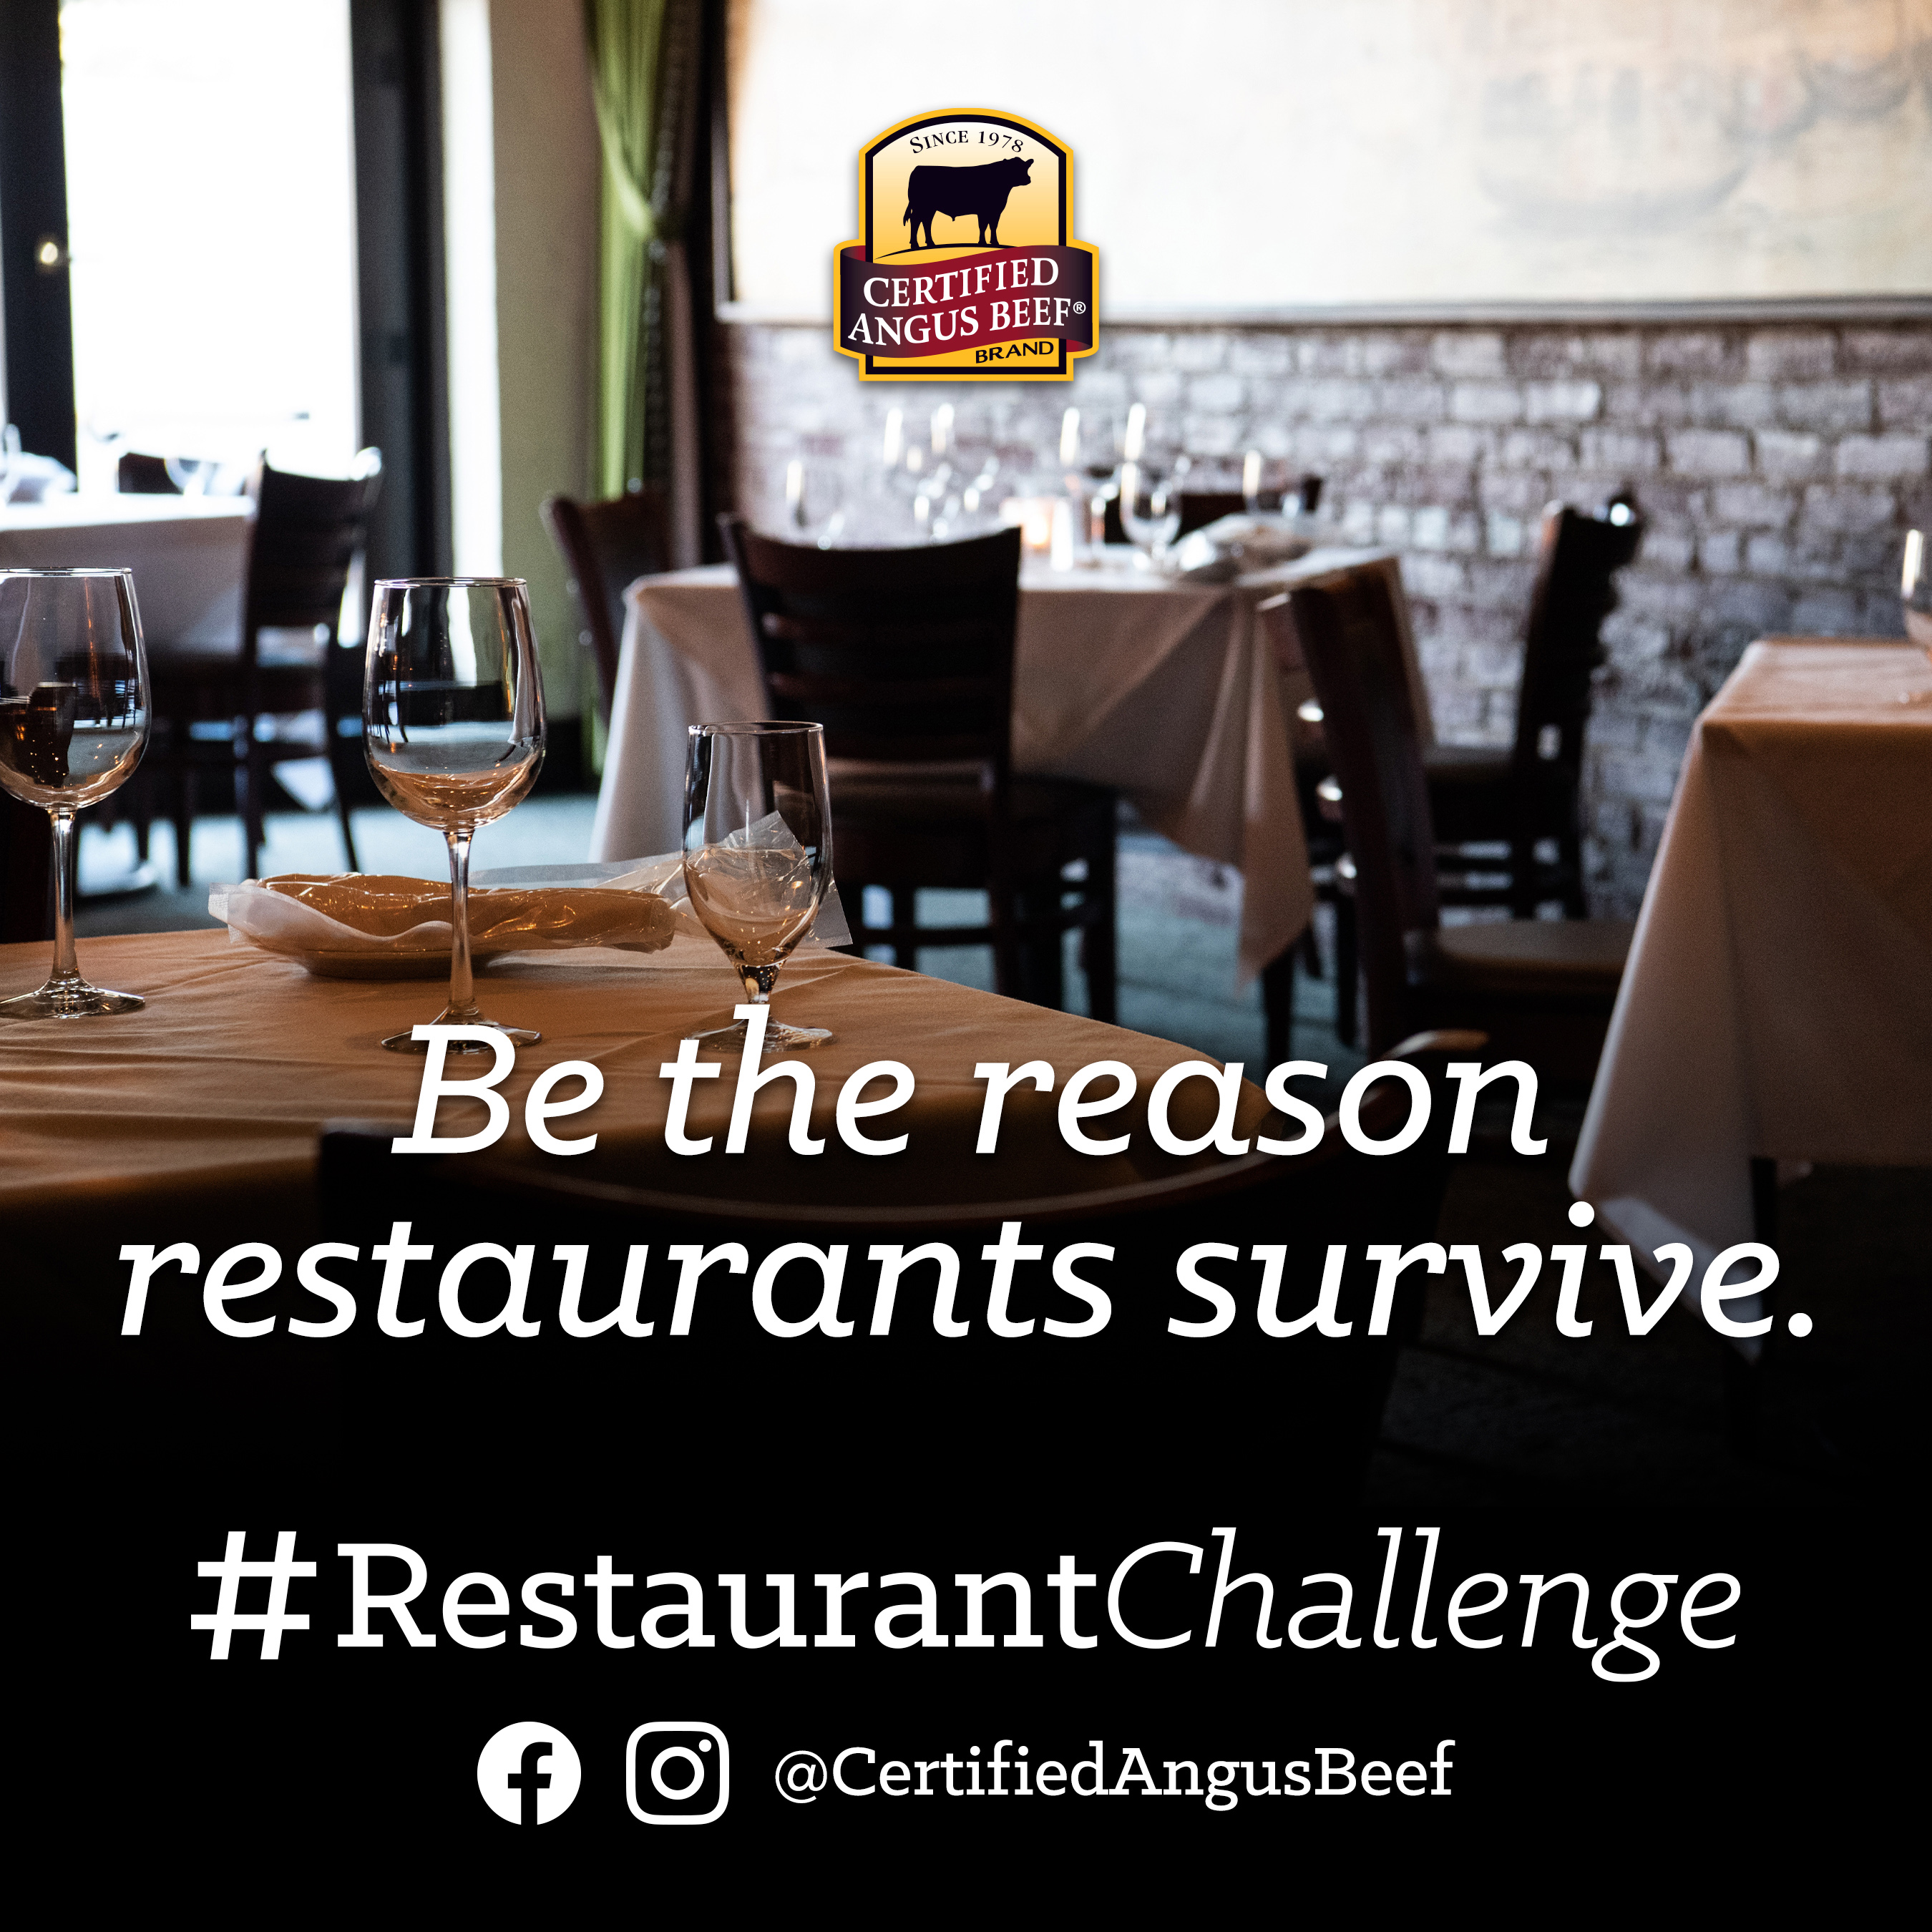 Be the reason restaurants survive